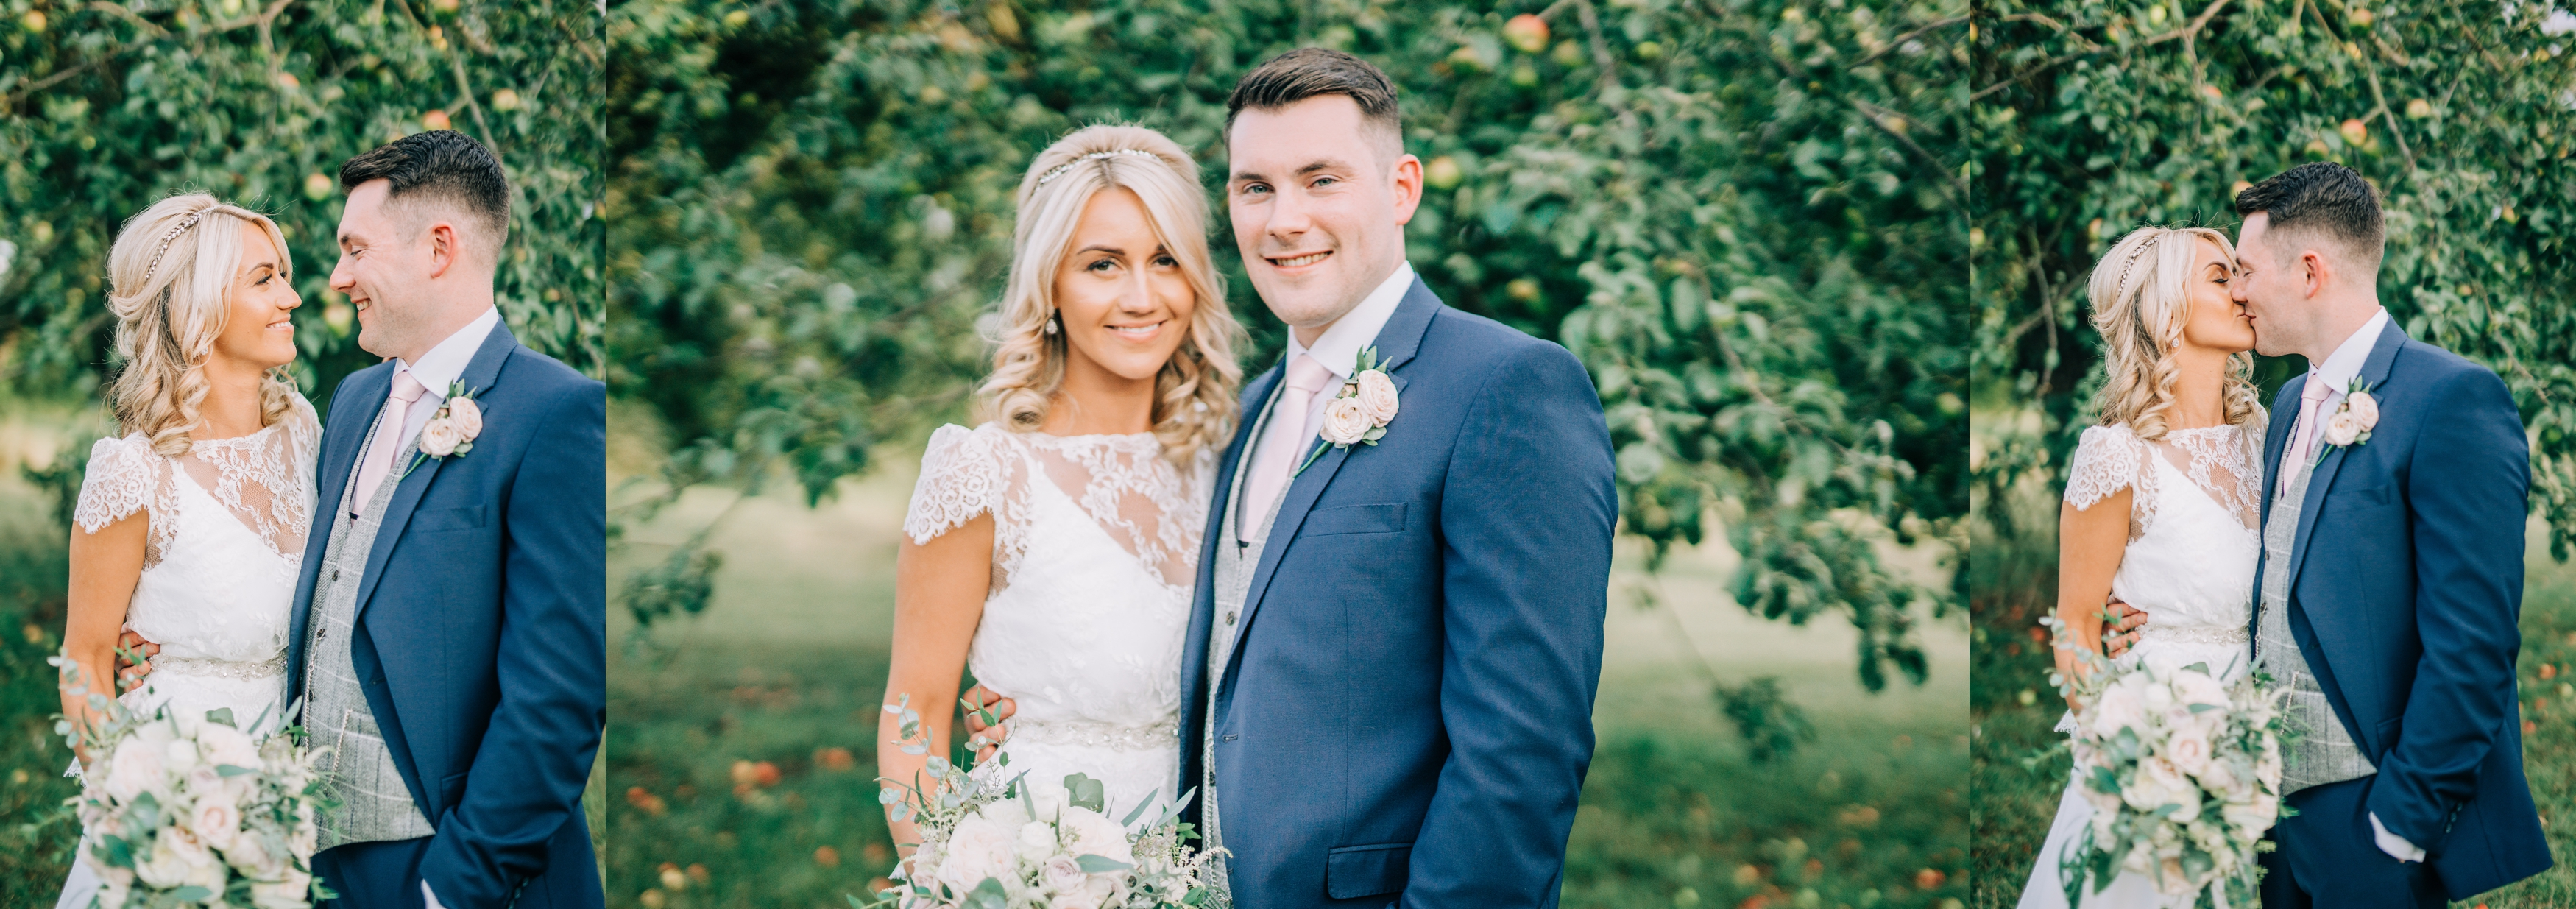 Bride and Groom at Priory Cottages Wetherby